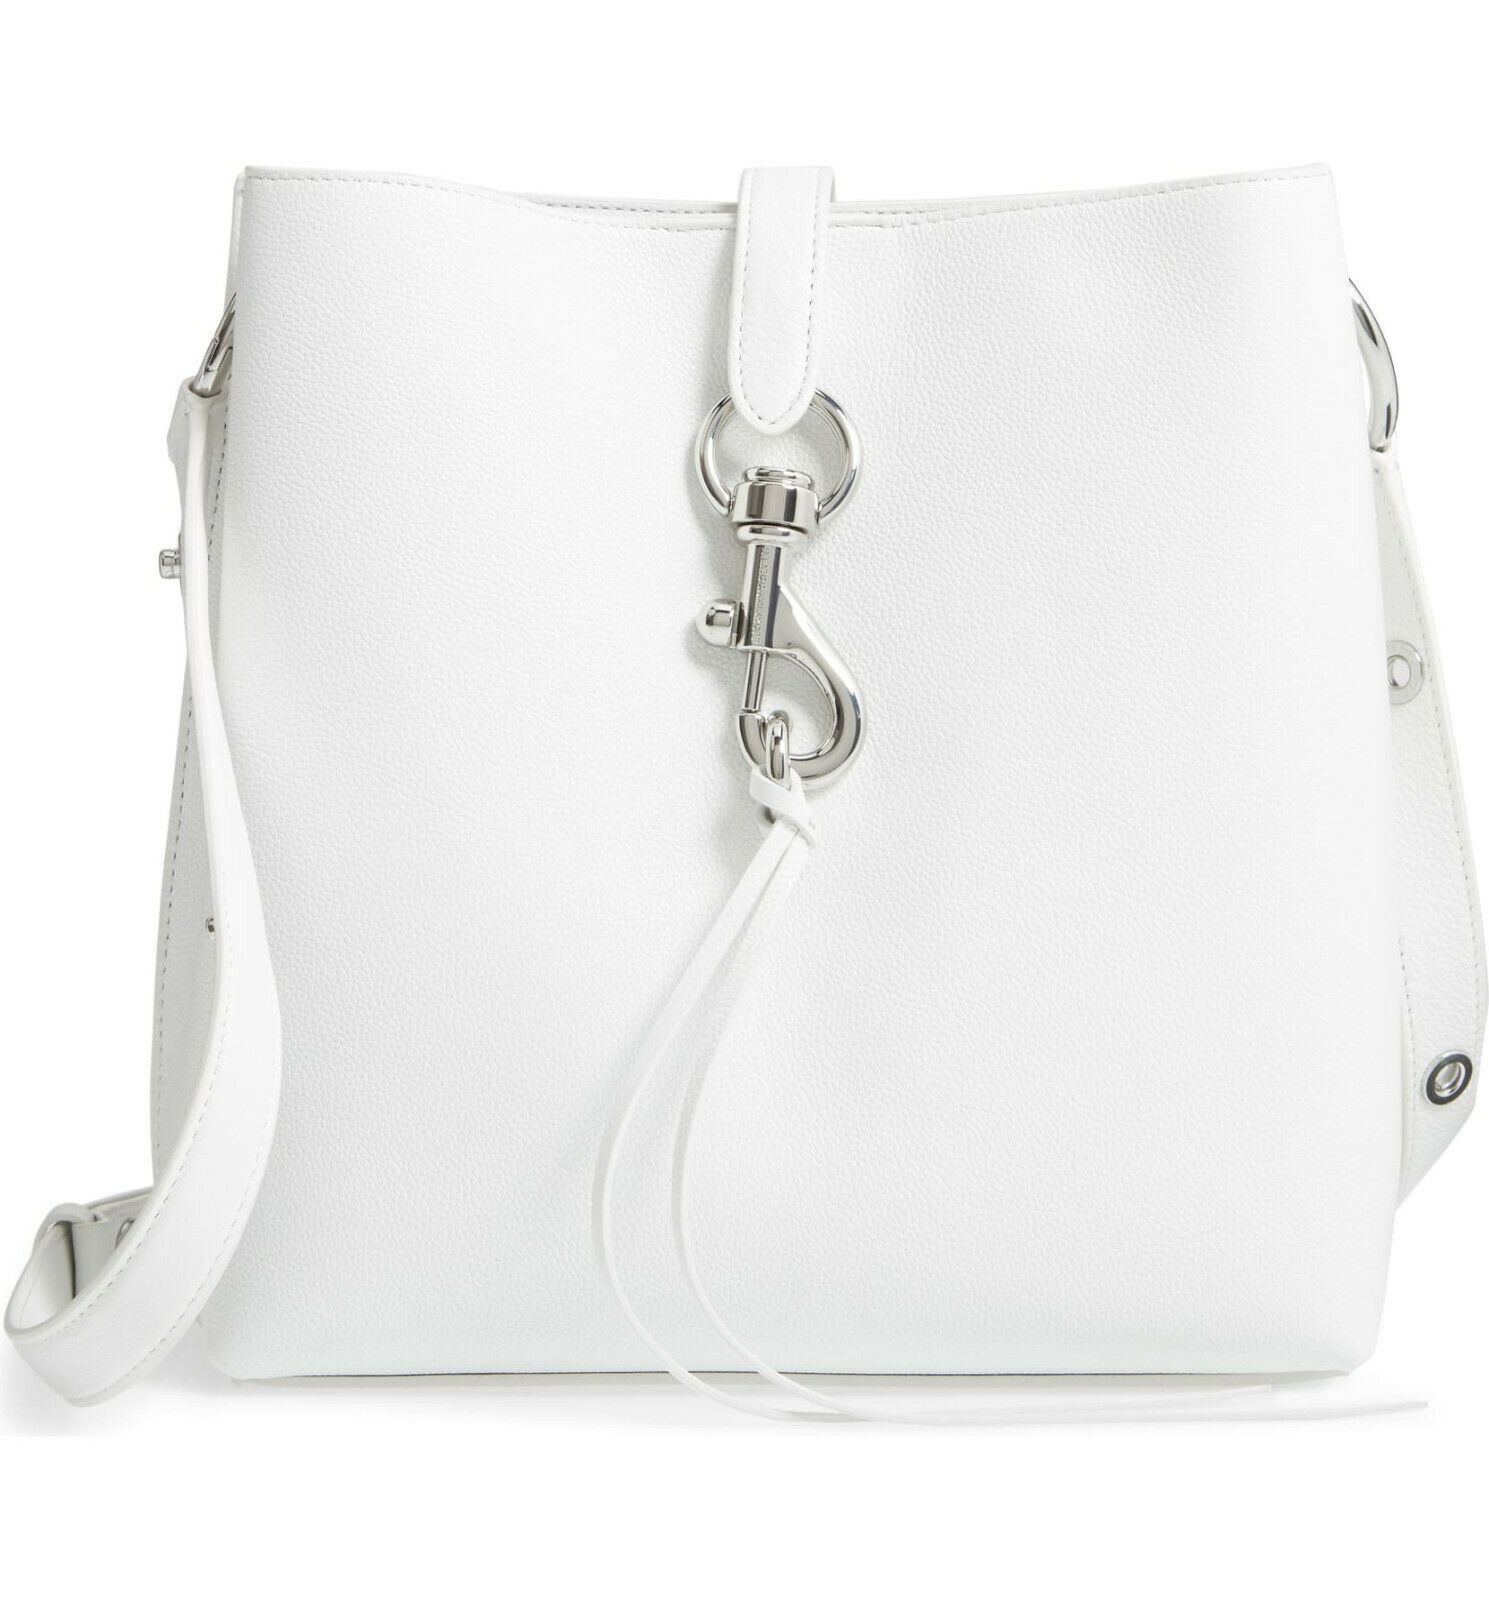 Primary image for Rebecca Minkoff Large Megan Shoulder Bag - Optic White (Retail - $328)